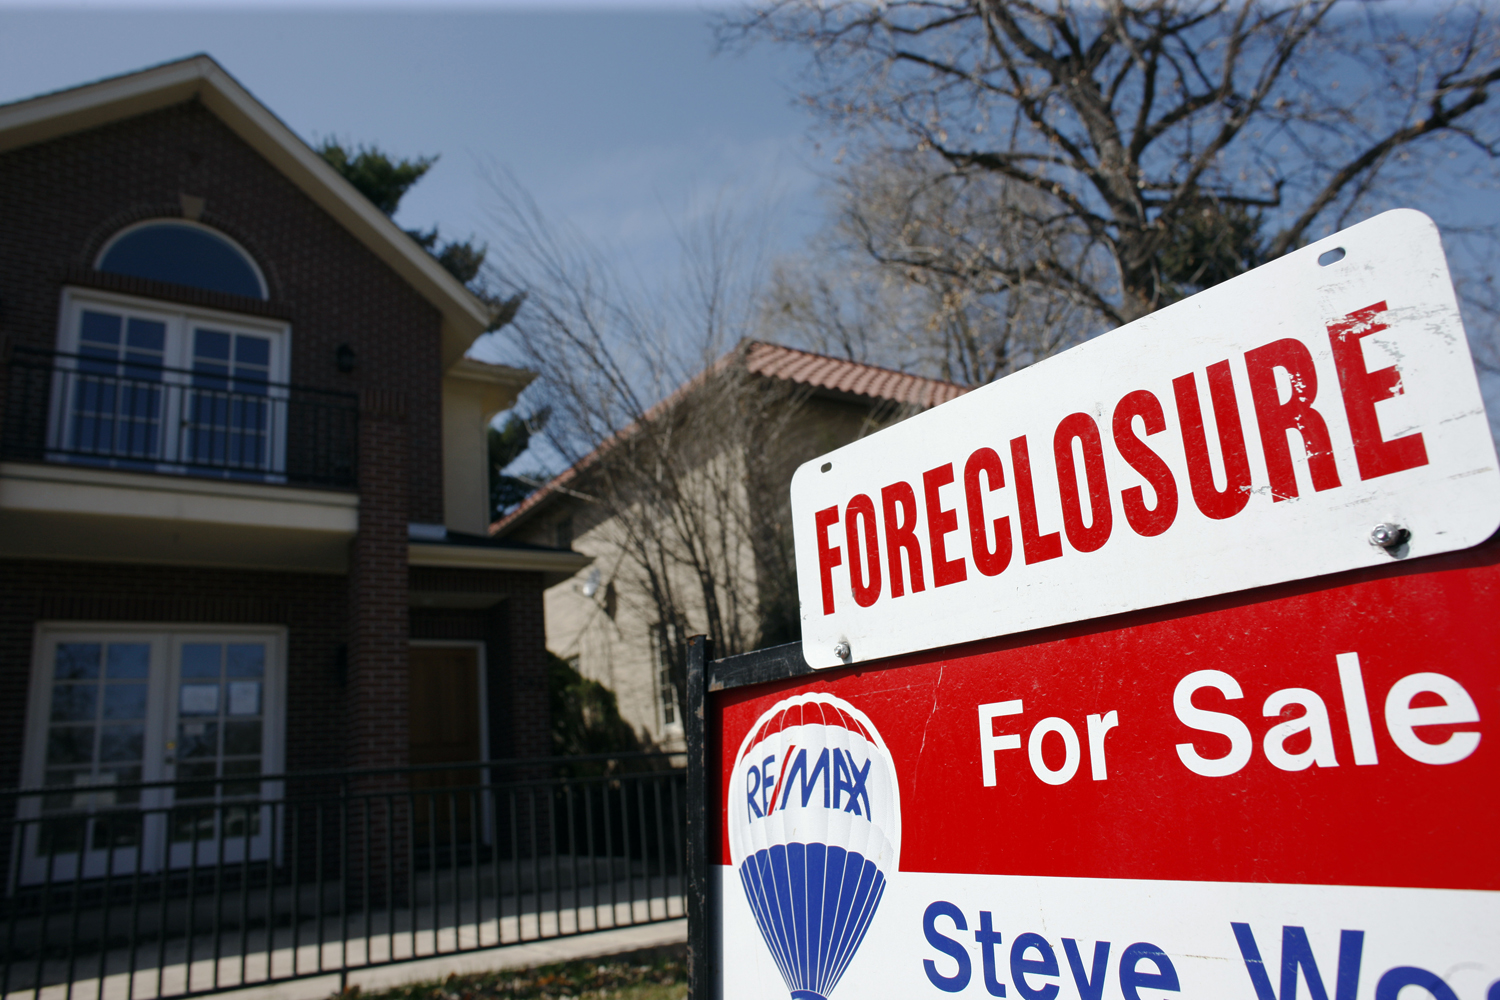 In this April 4, 2010 file photo, a foreclosure sign sits atop a for sale sign in front of a single-family home tops the for sale sign in Denver on Sunday, April 4, 2010. (David Zalubowski/AP)